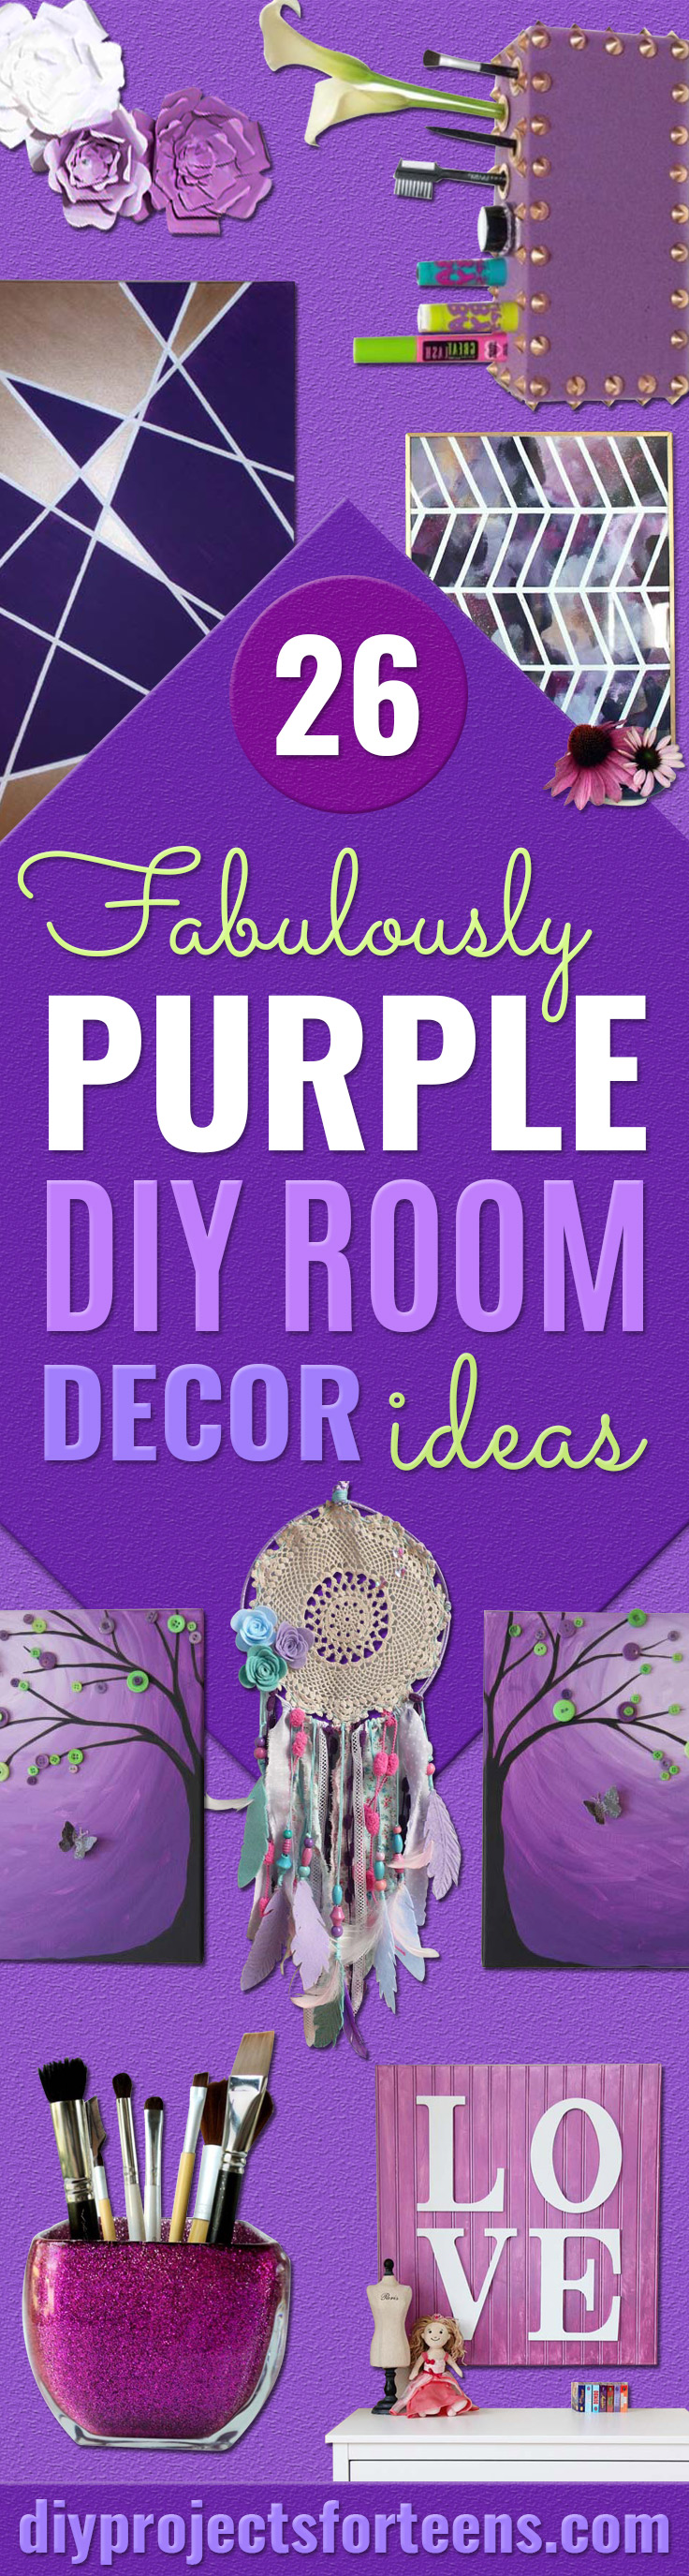 26 Fabulously Purple DIY Room Decor Ideas DIY Projects for Teens